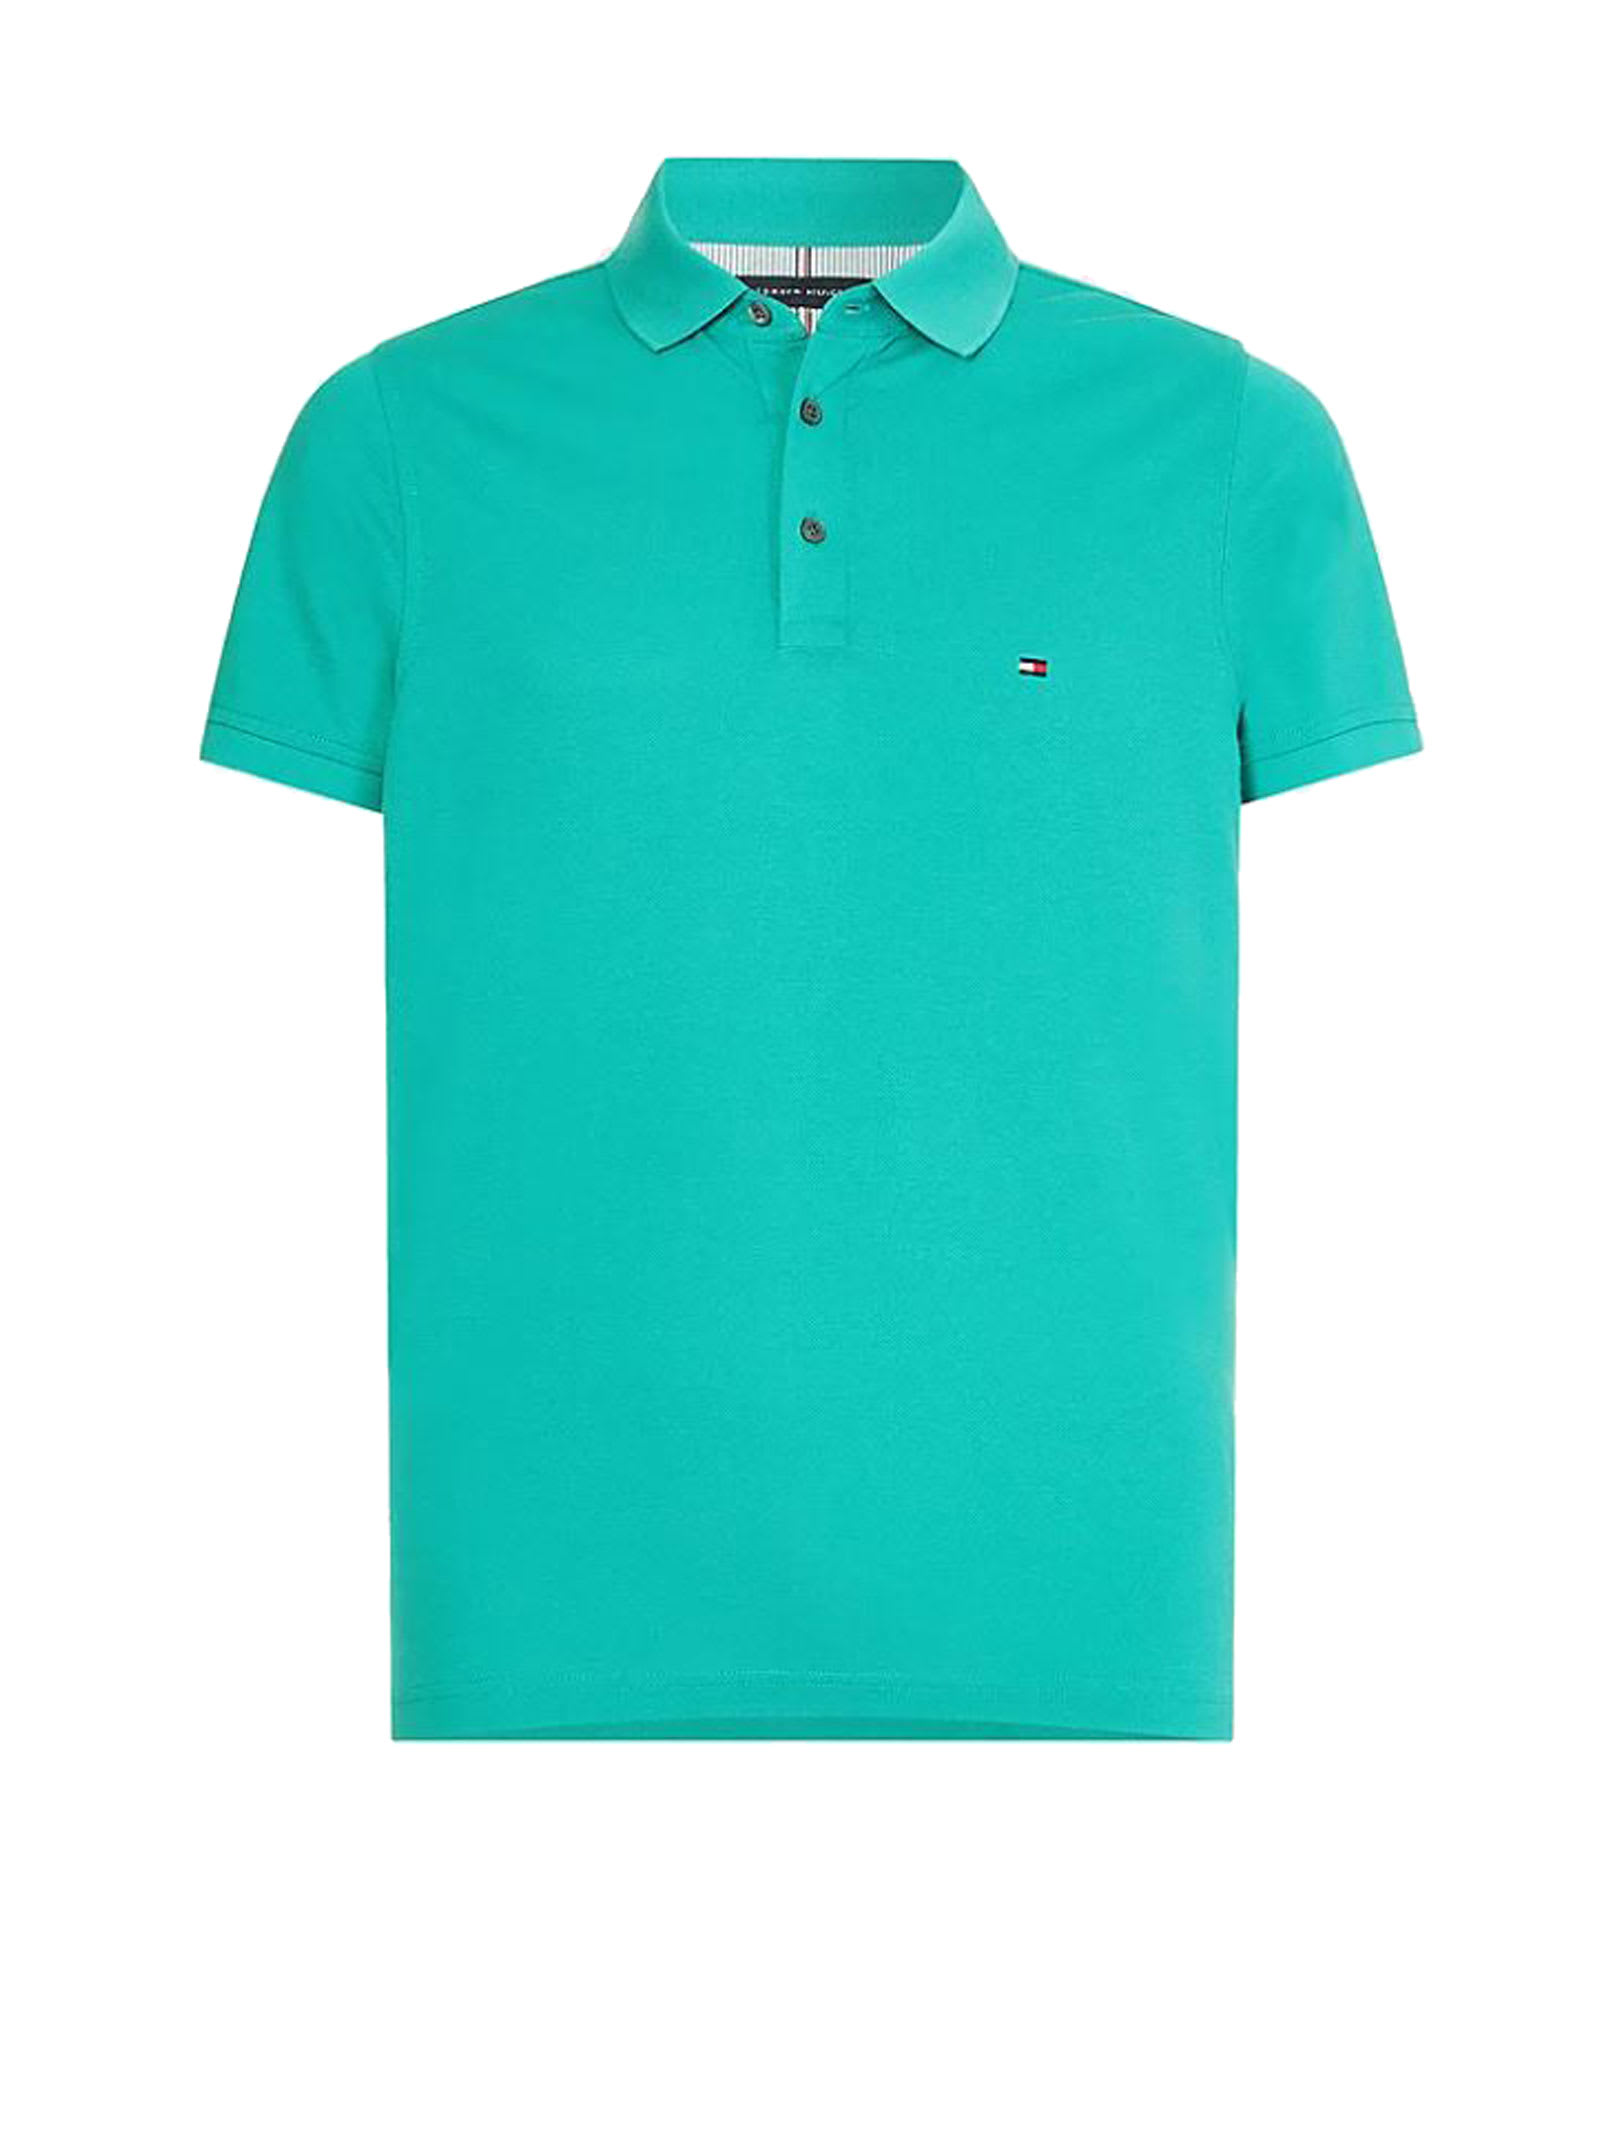 Tommy Hilfiger Polo Shirt In Green Cotton